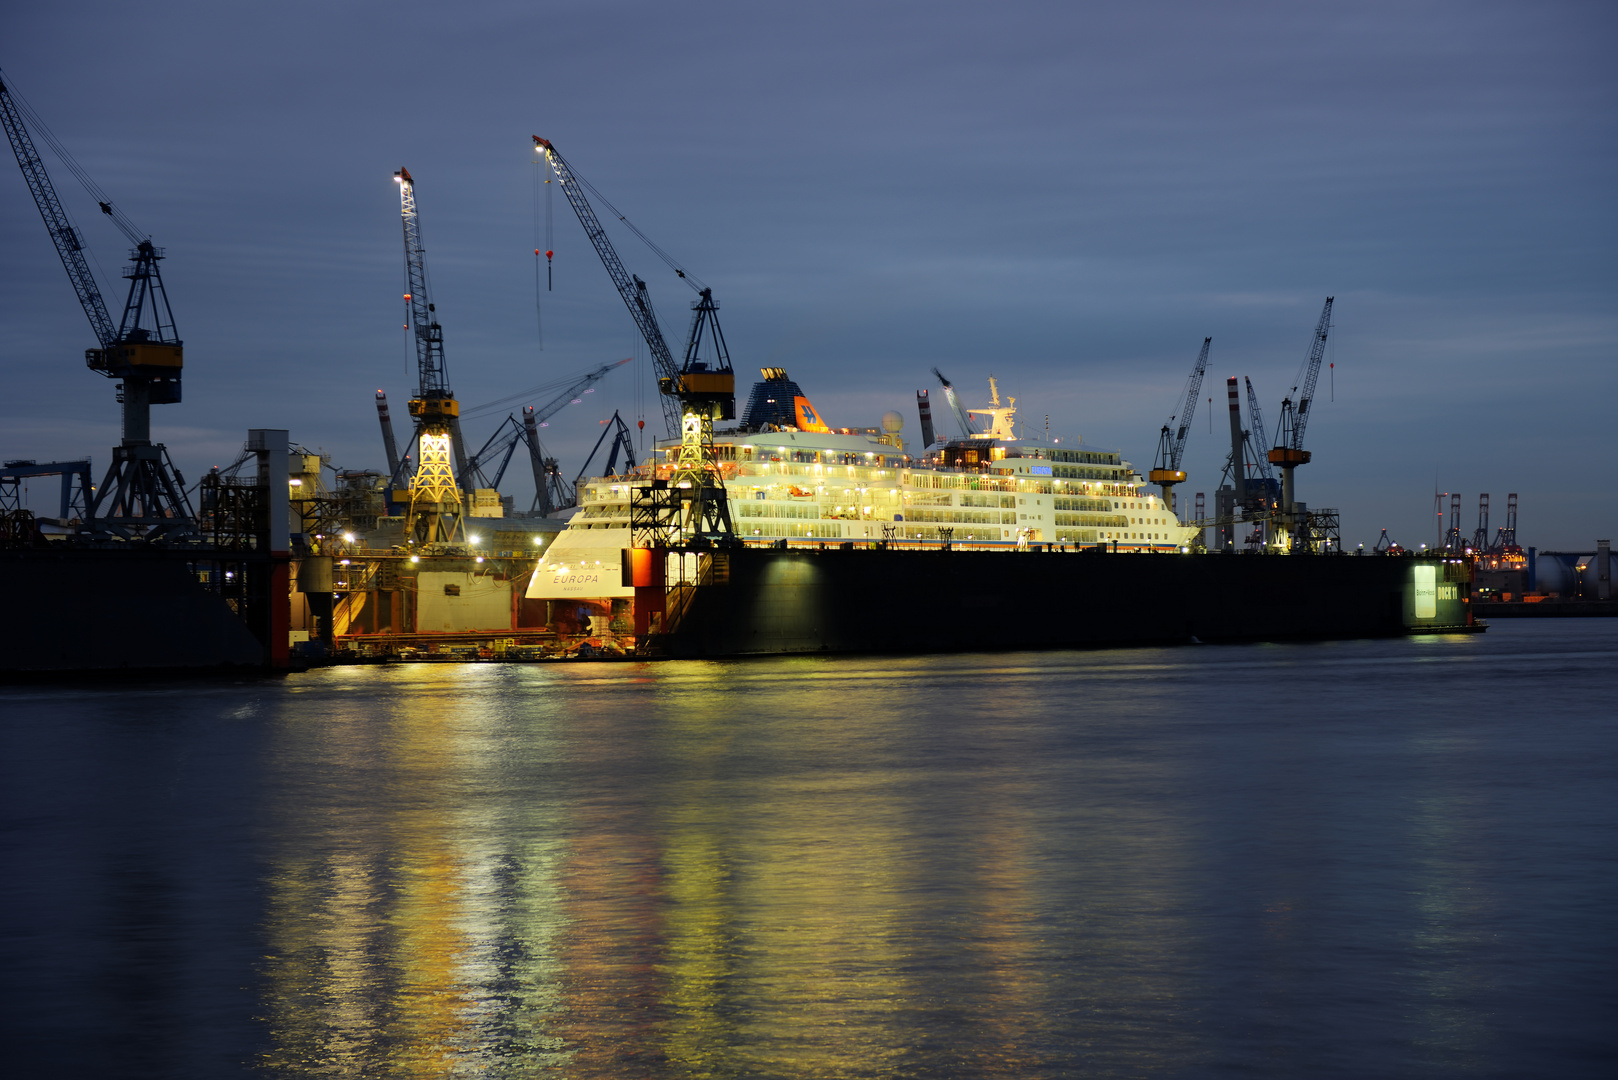 MS Europa in Hamburg during her stay at Blohm+Voss